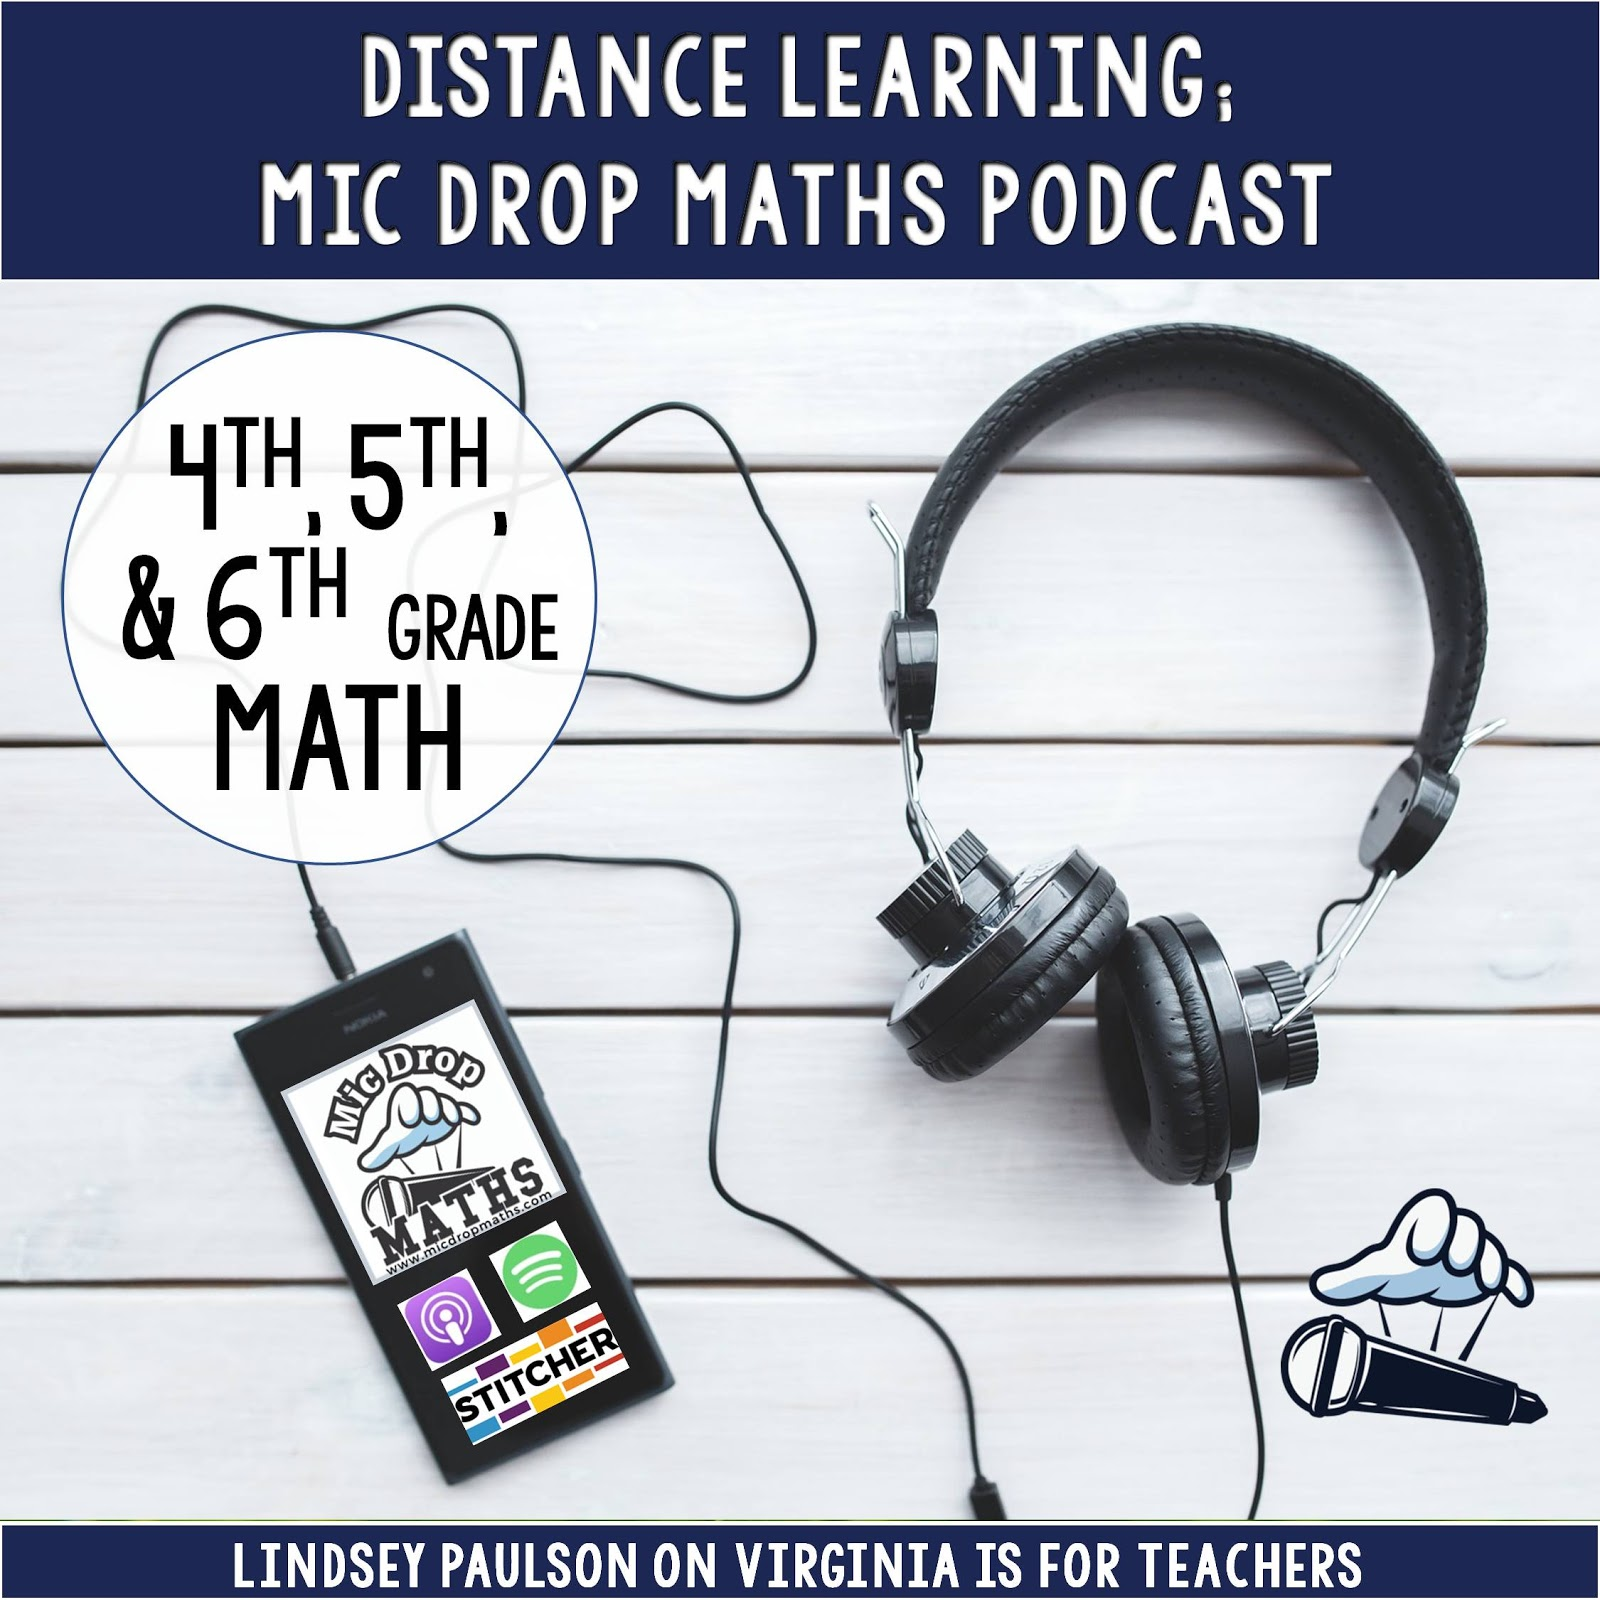 Check out the Mic Drop Maths podcast for kids for distance learning with quality math instruction for 4th-6th grades. Find the podcast on Apple, Stitcher, Spotifiy, or www.micdropmaths.com